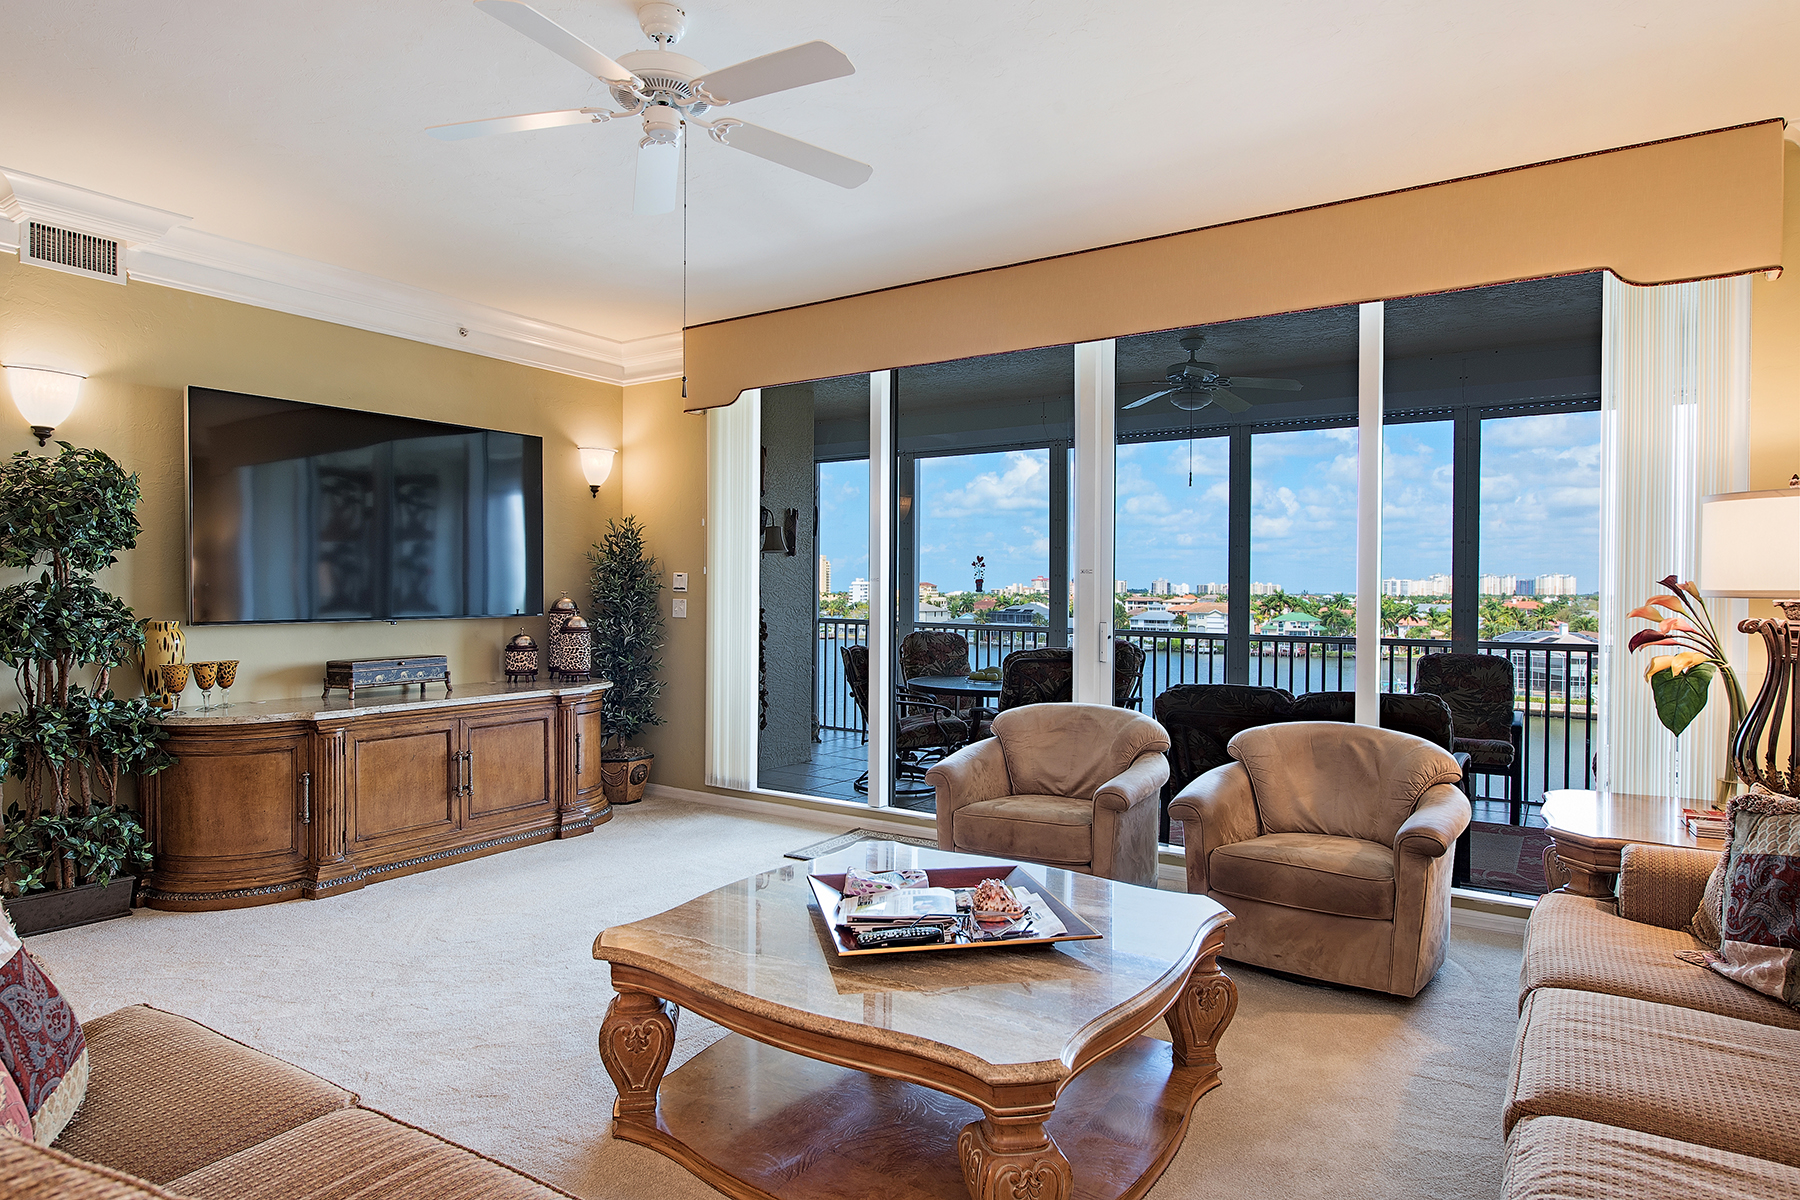 Condominium for Sale at VANDERBILT BEACH - REGATTA 410 Flagship Dr 604 Naples, Florida, 34108 United States